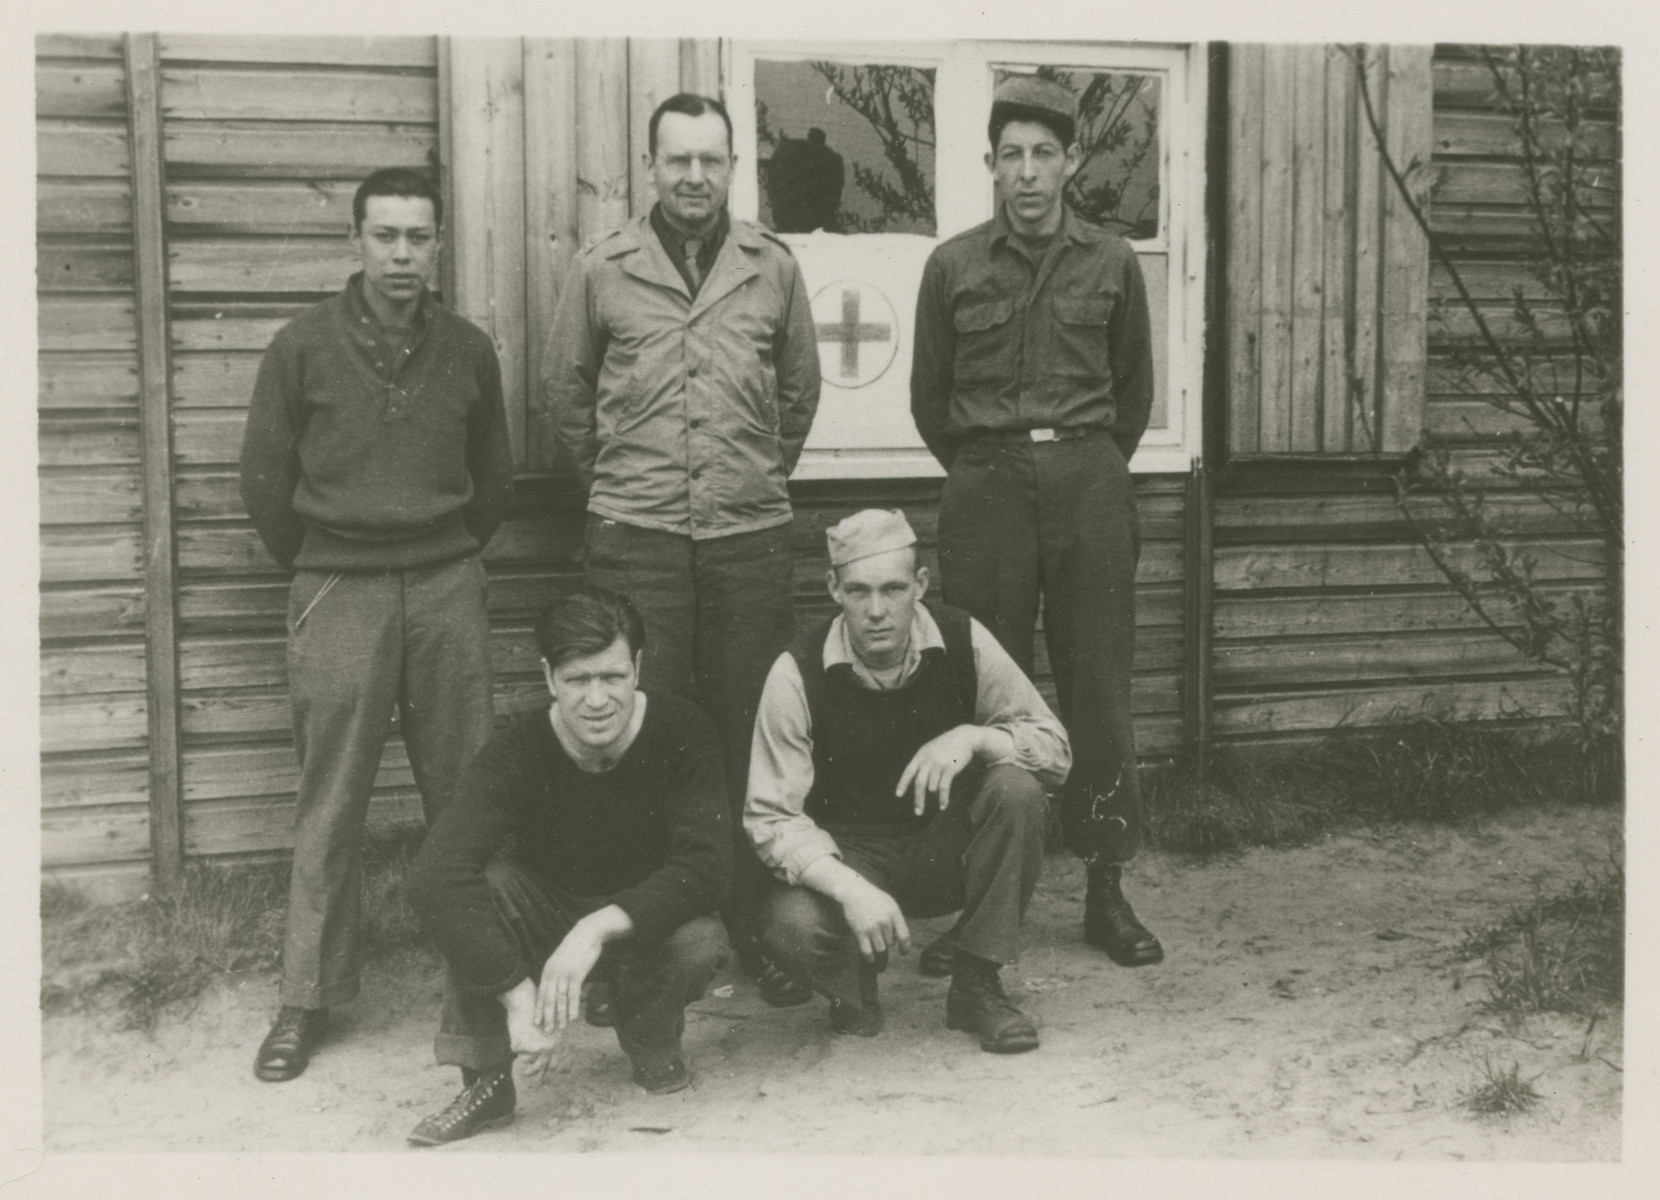 POWs pose outside a Red Cross building in Stalag Luft 1.